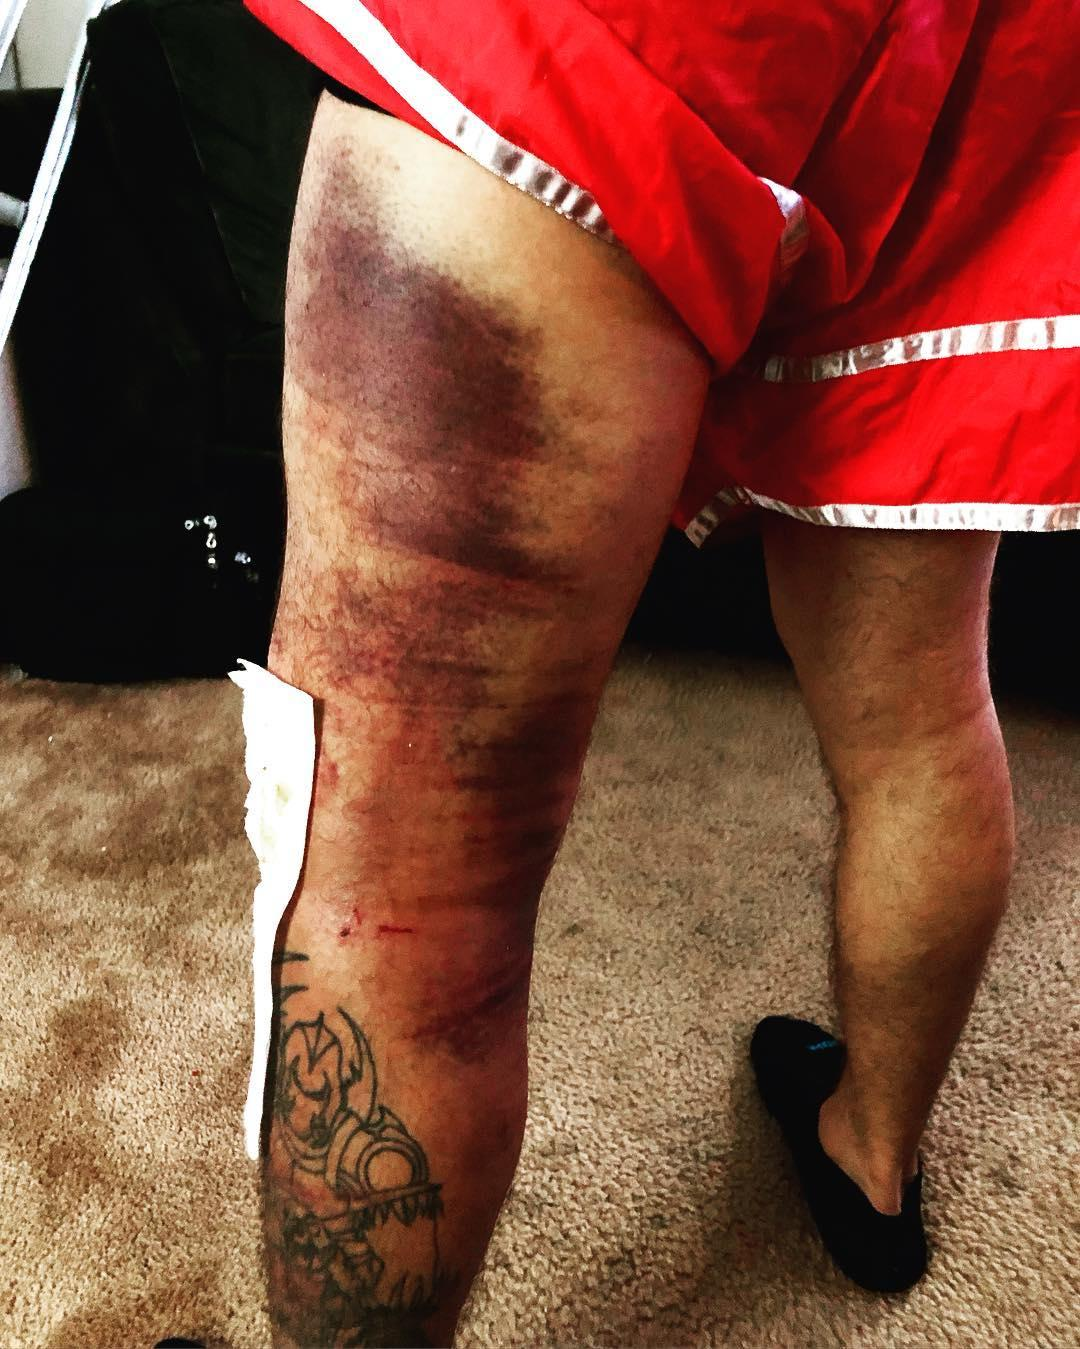 The UFC ace revealed the extent of his injuries on Instagram